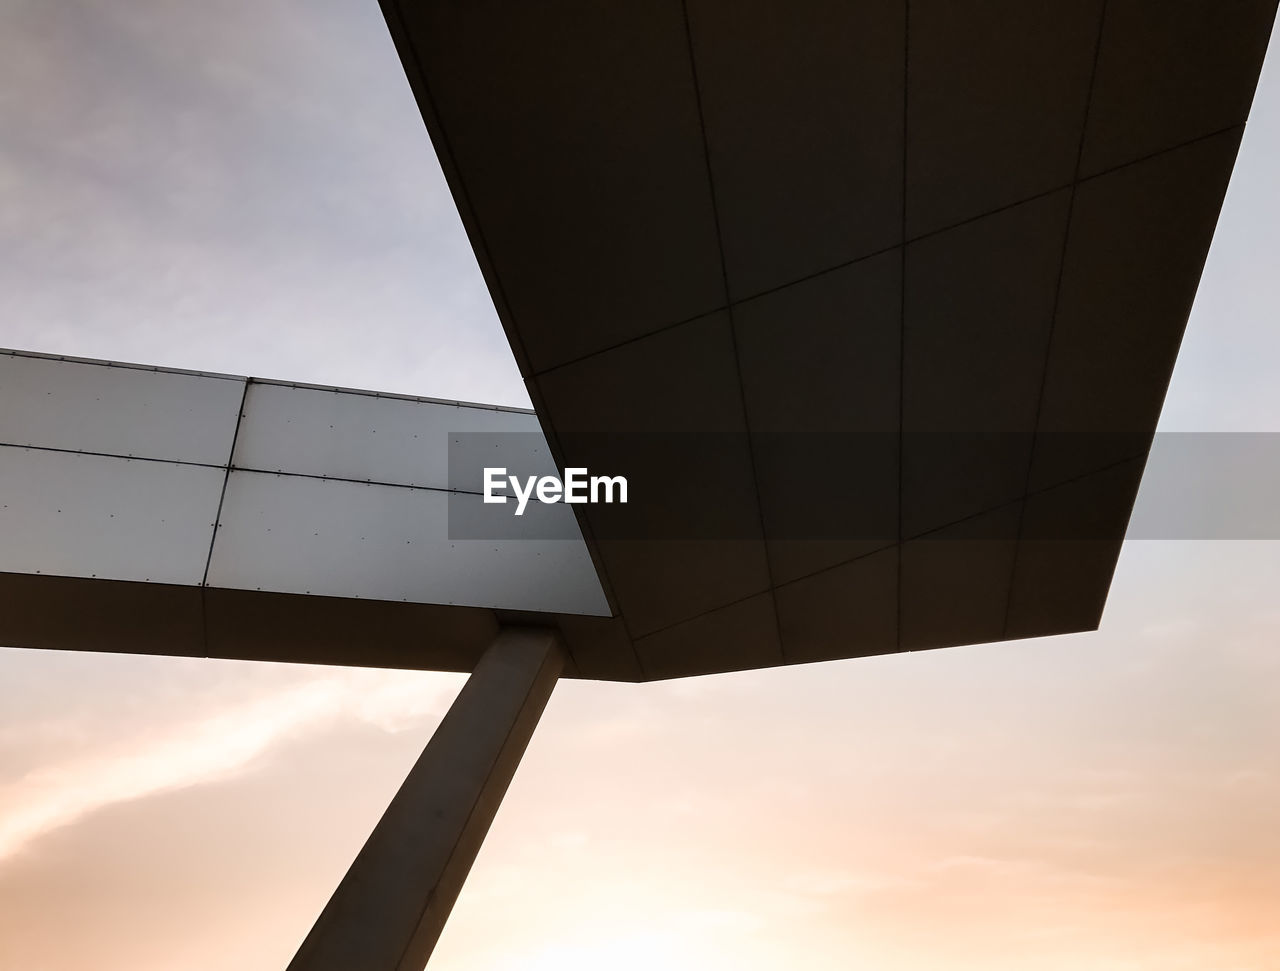 Low Angle View Of Built Structure Against Cloudy Sky During Sunset